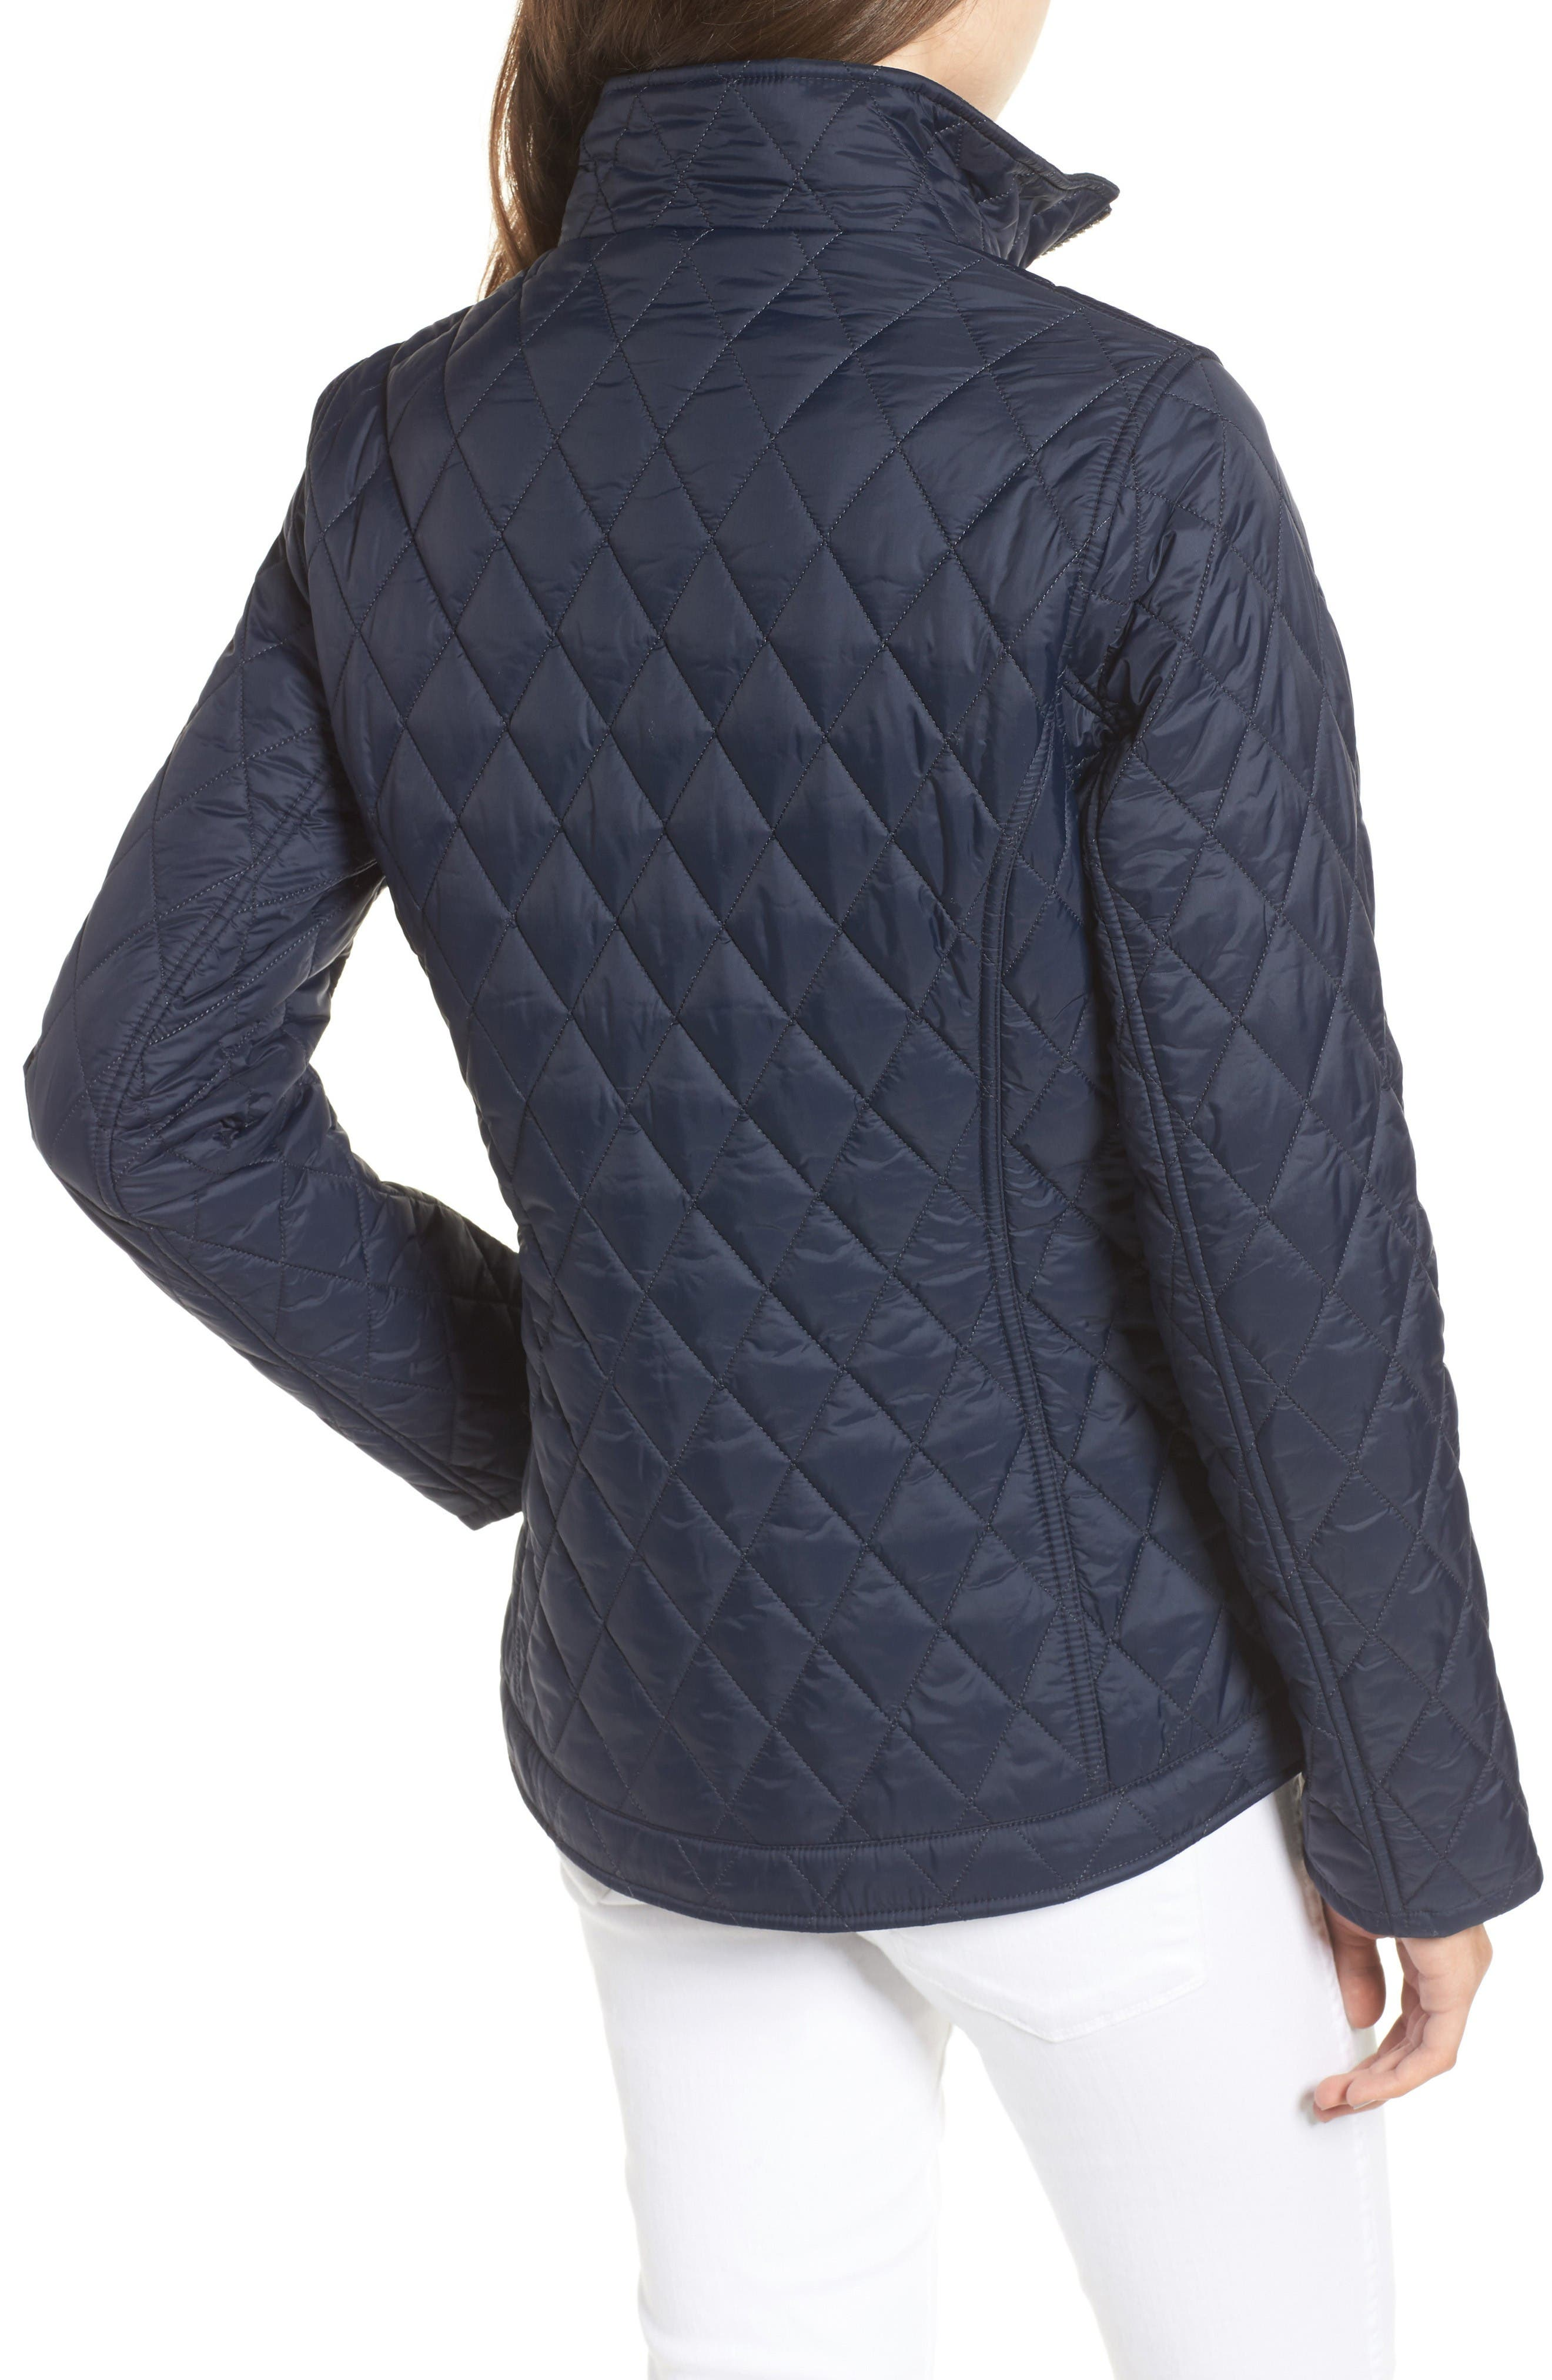 Dolostone Quilted Jacket,                             Alternate thumbnail 2, color,                             Dark Navy